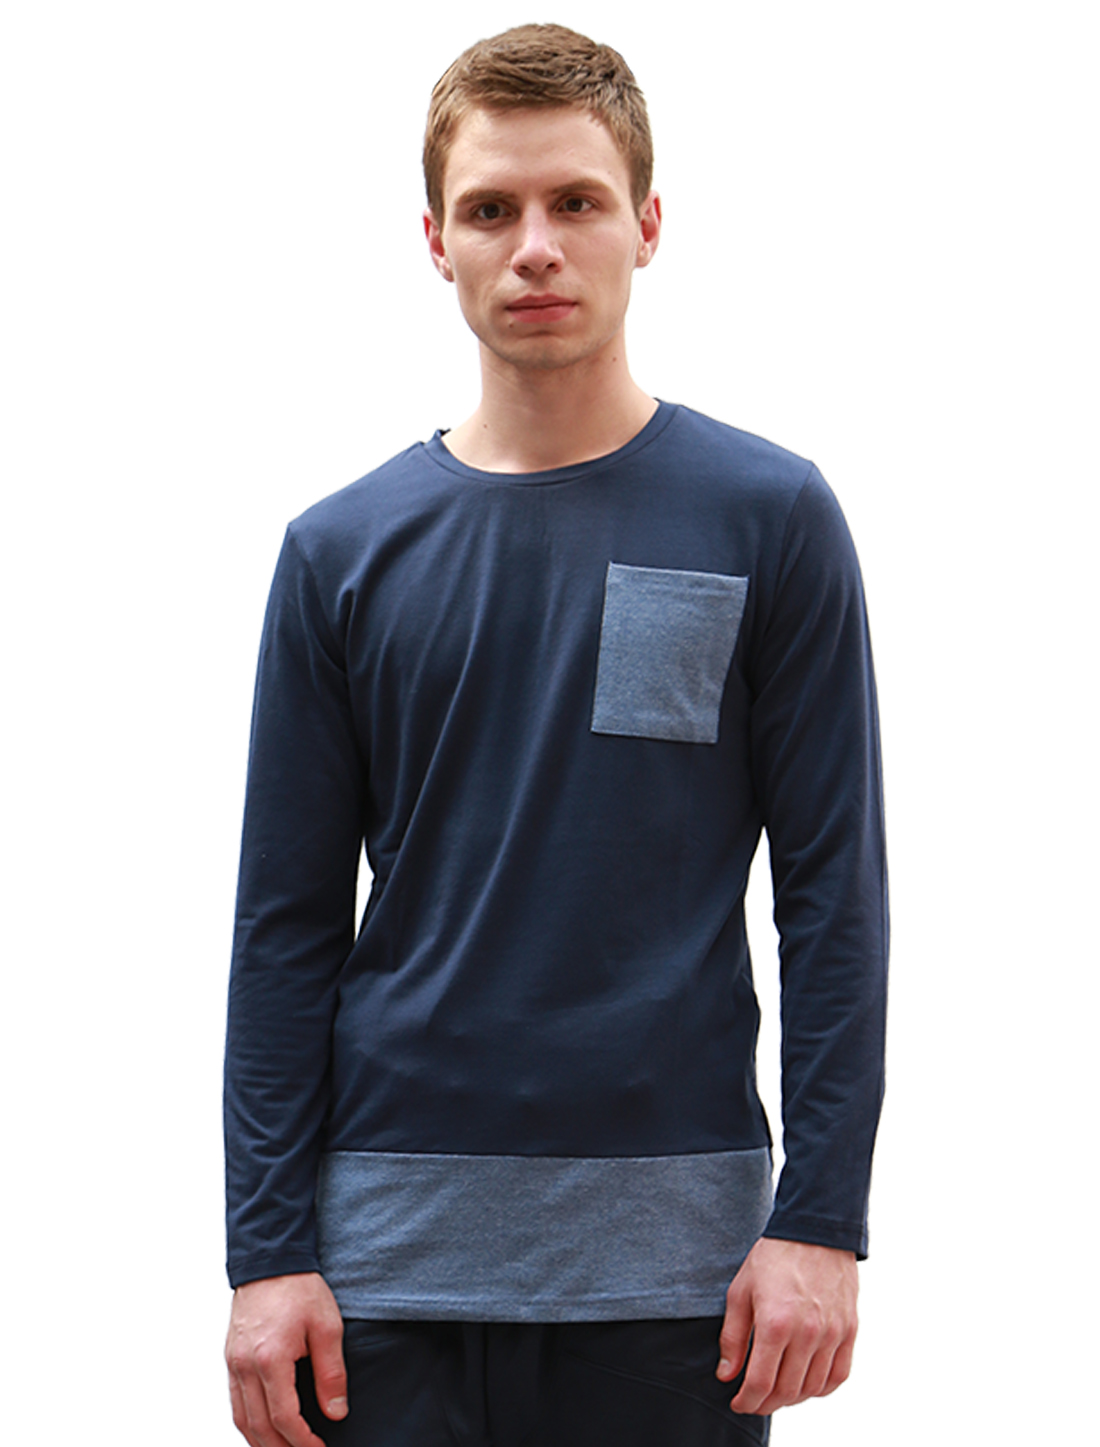 Men Contrast Color Longline Crew Neck Casual Tee Shirt Navy Blue M